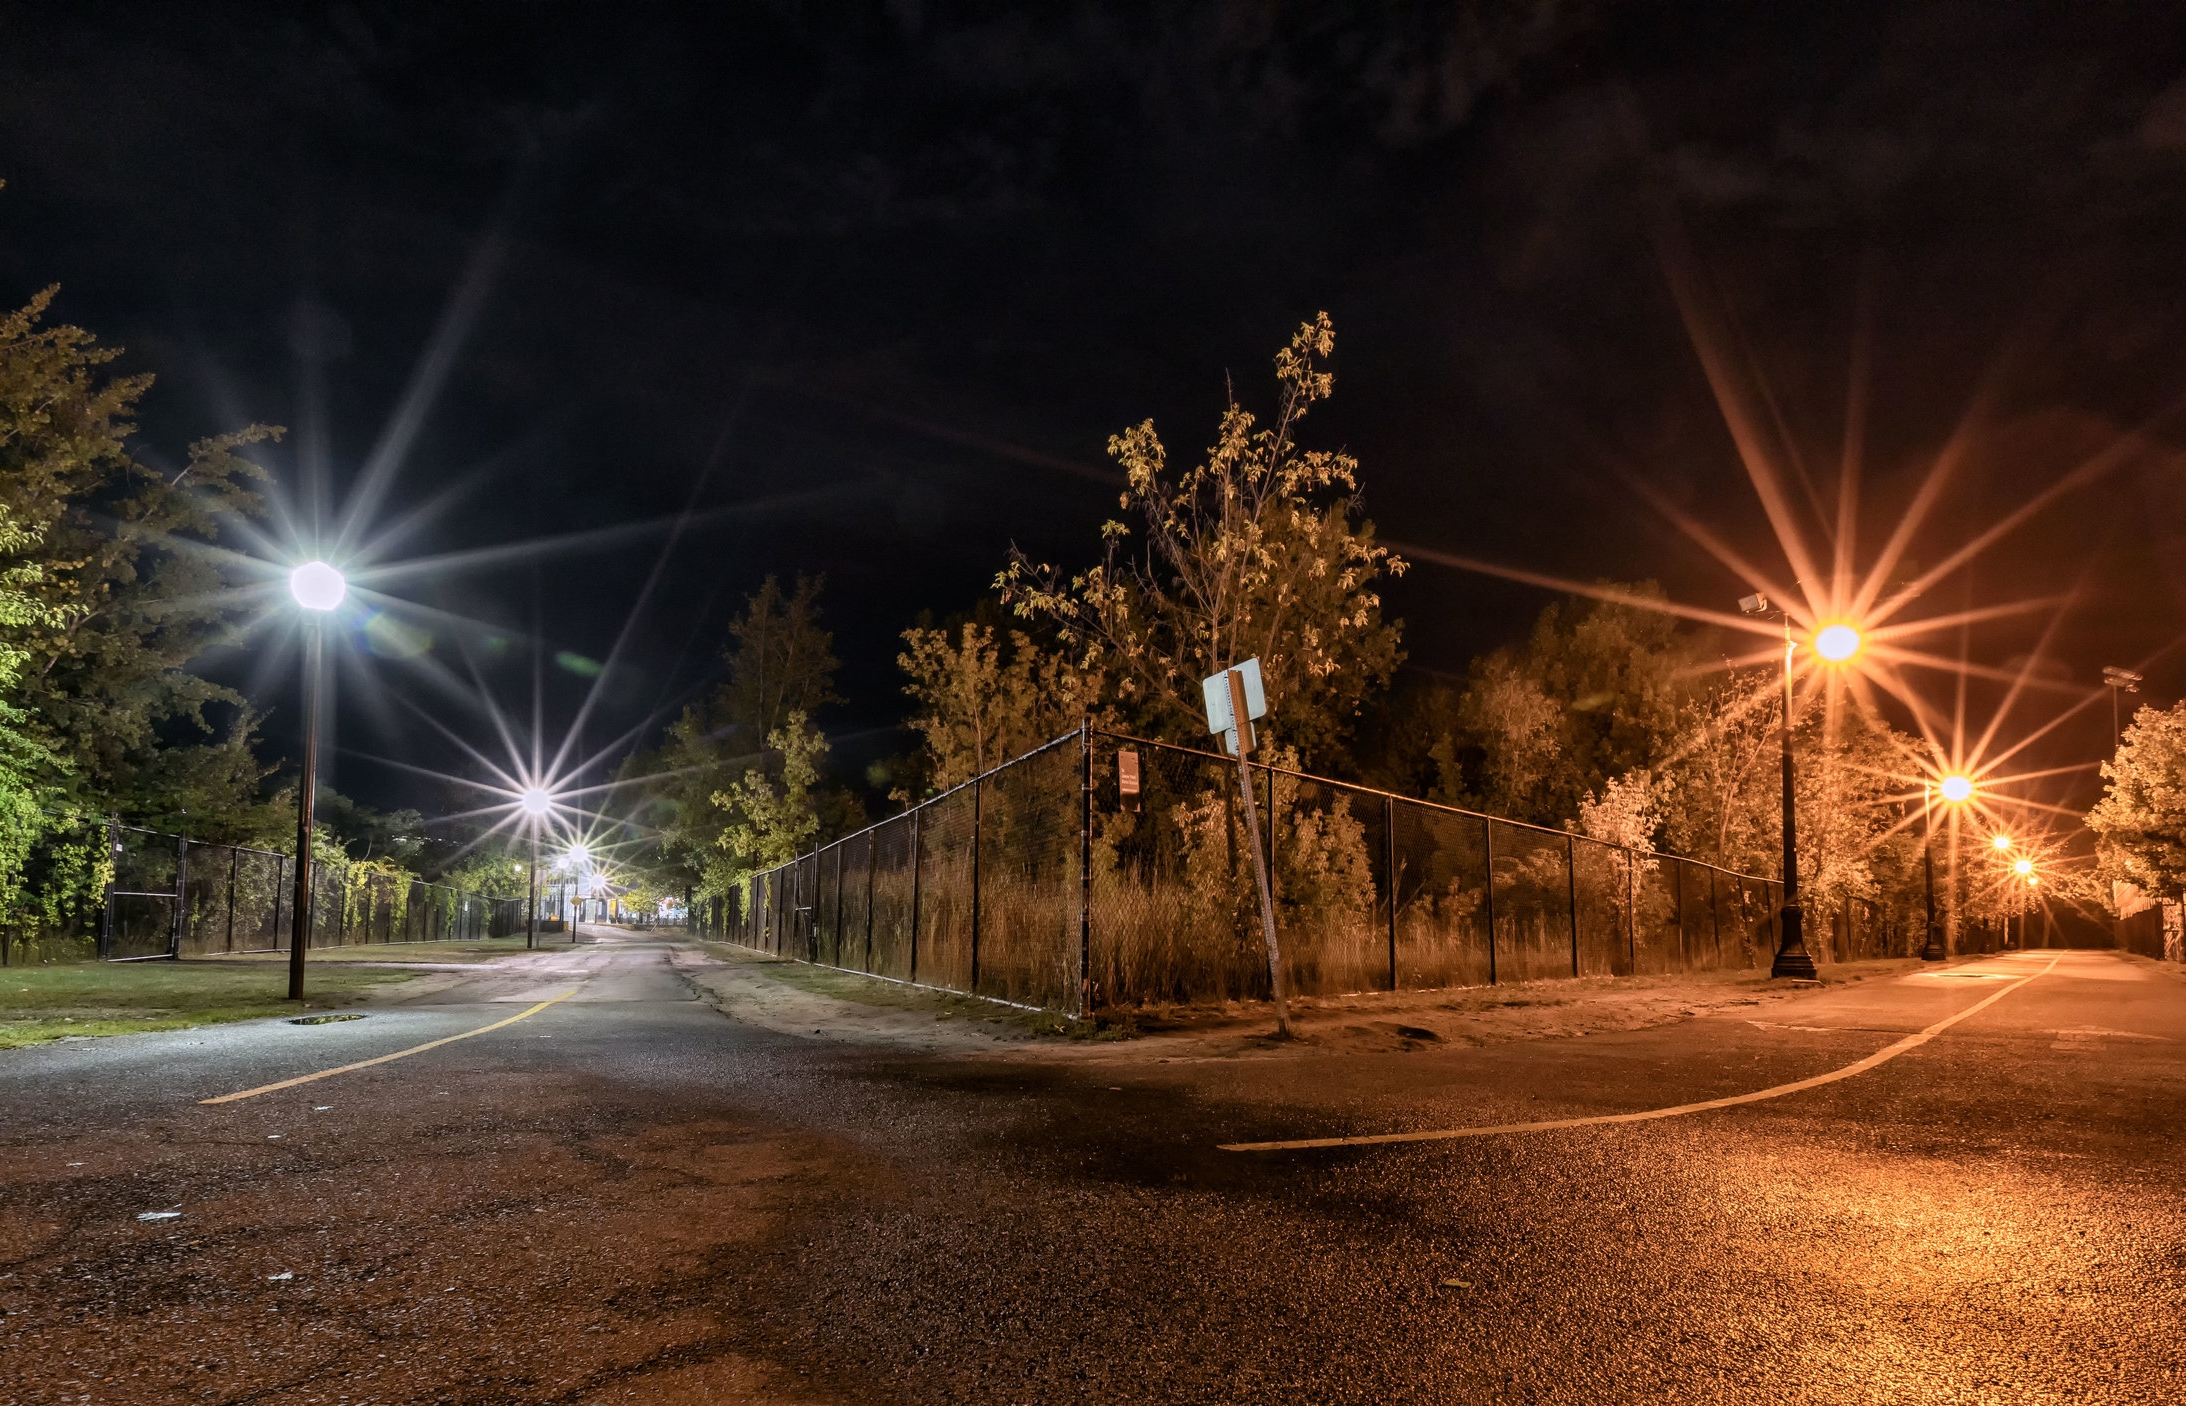 A street undergoing LED retrofitting, lit half in Sodium Vapor (right) and half in LED (left)